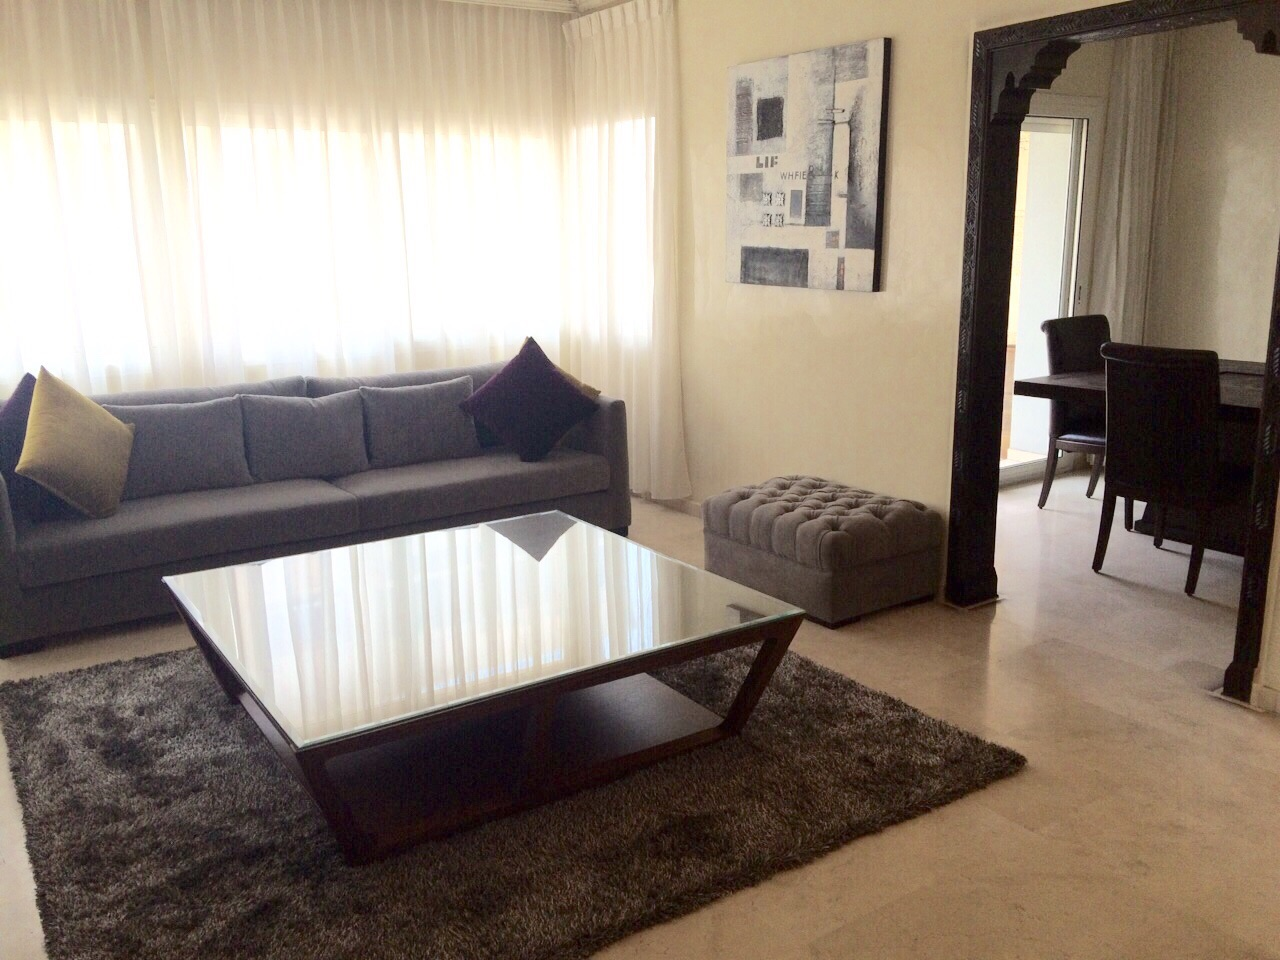 Appartement meubl location casablanca - Location appartement meuble a casablanca ...